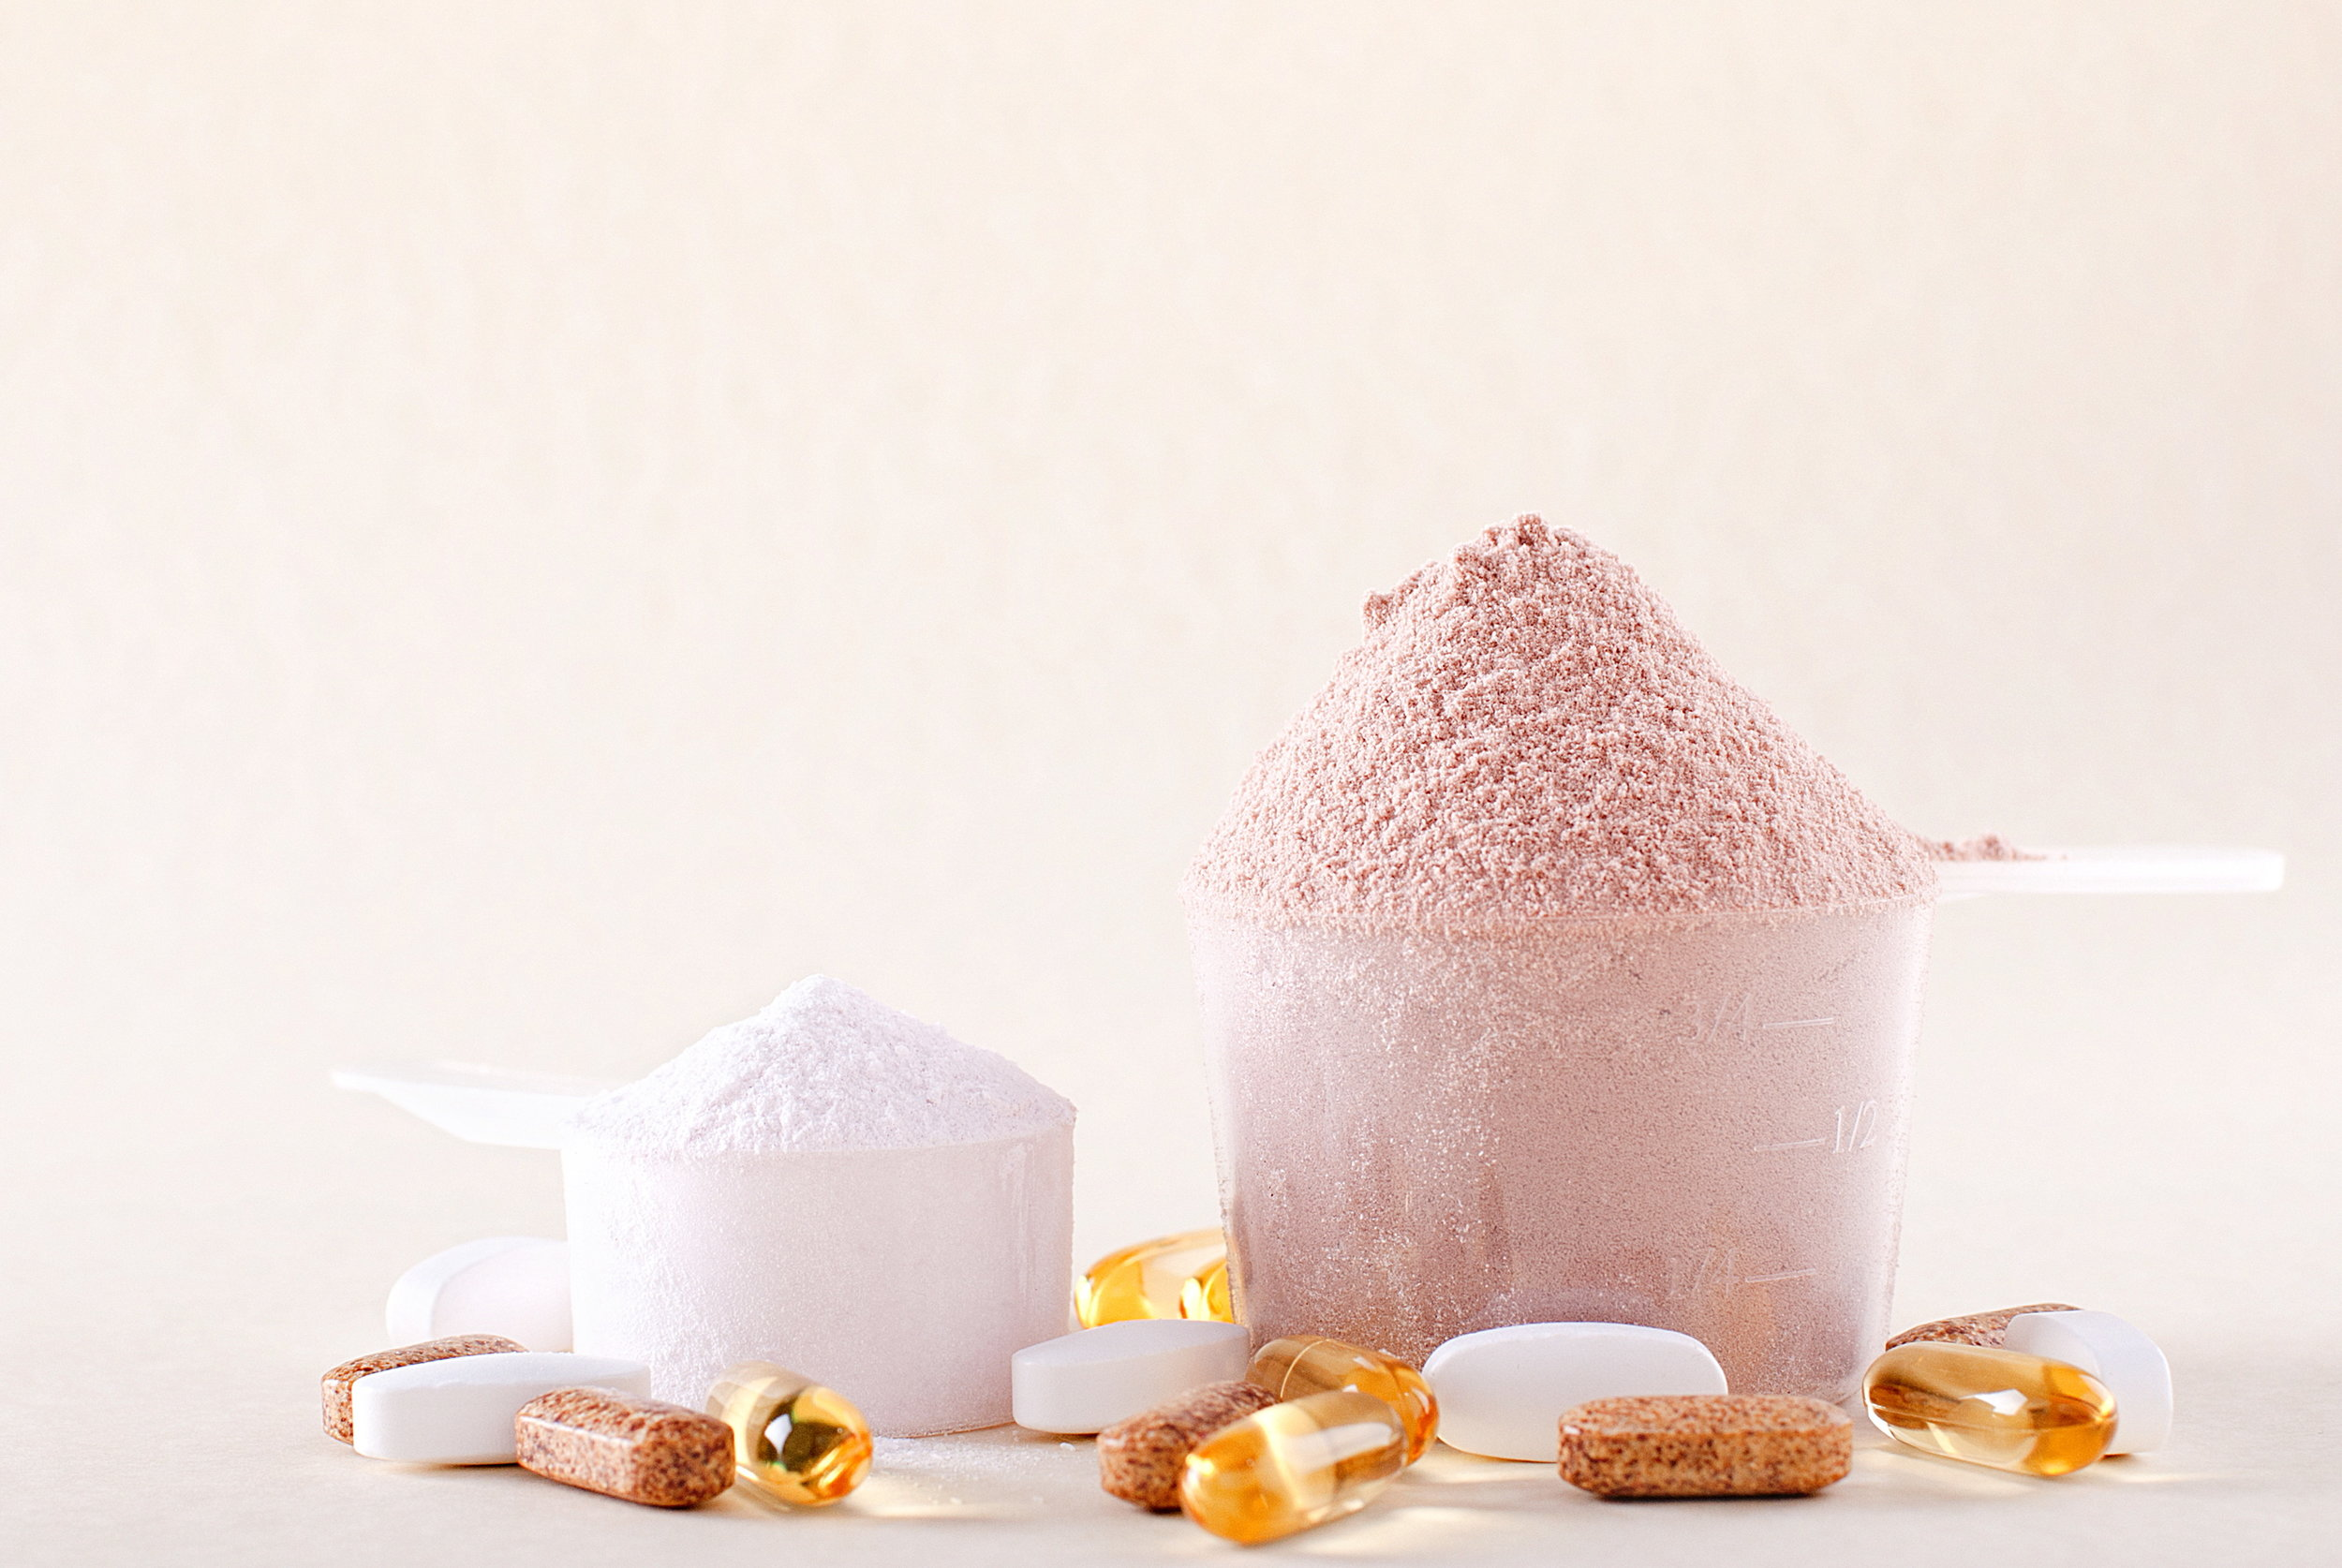 Here are some common additives and fillers you should look for on supplement and vitamin labels. You want to skip these whenever possible.